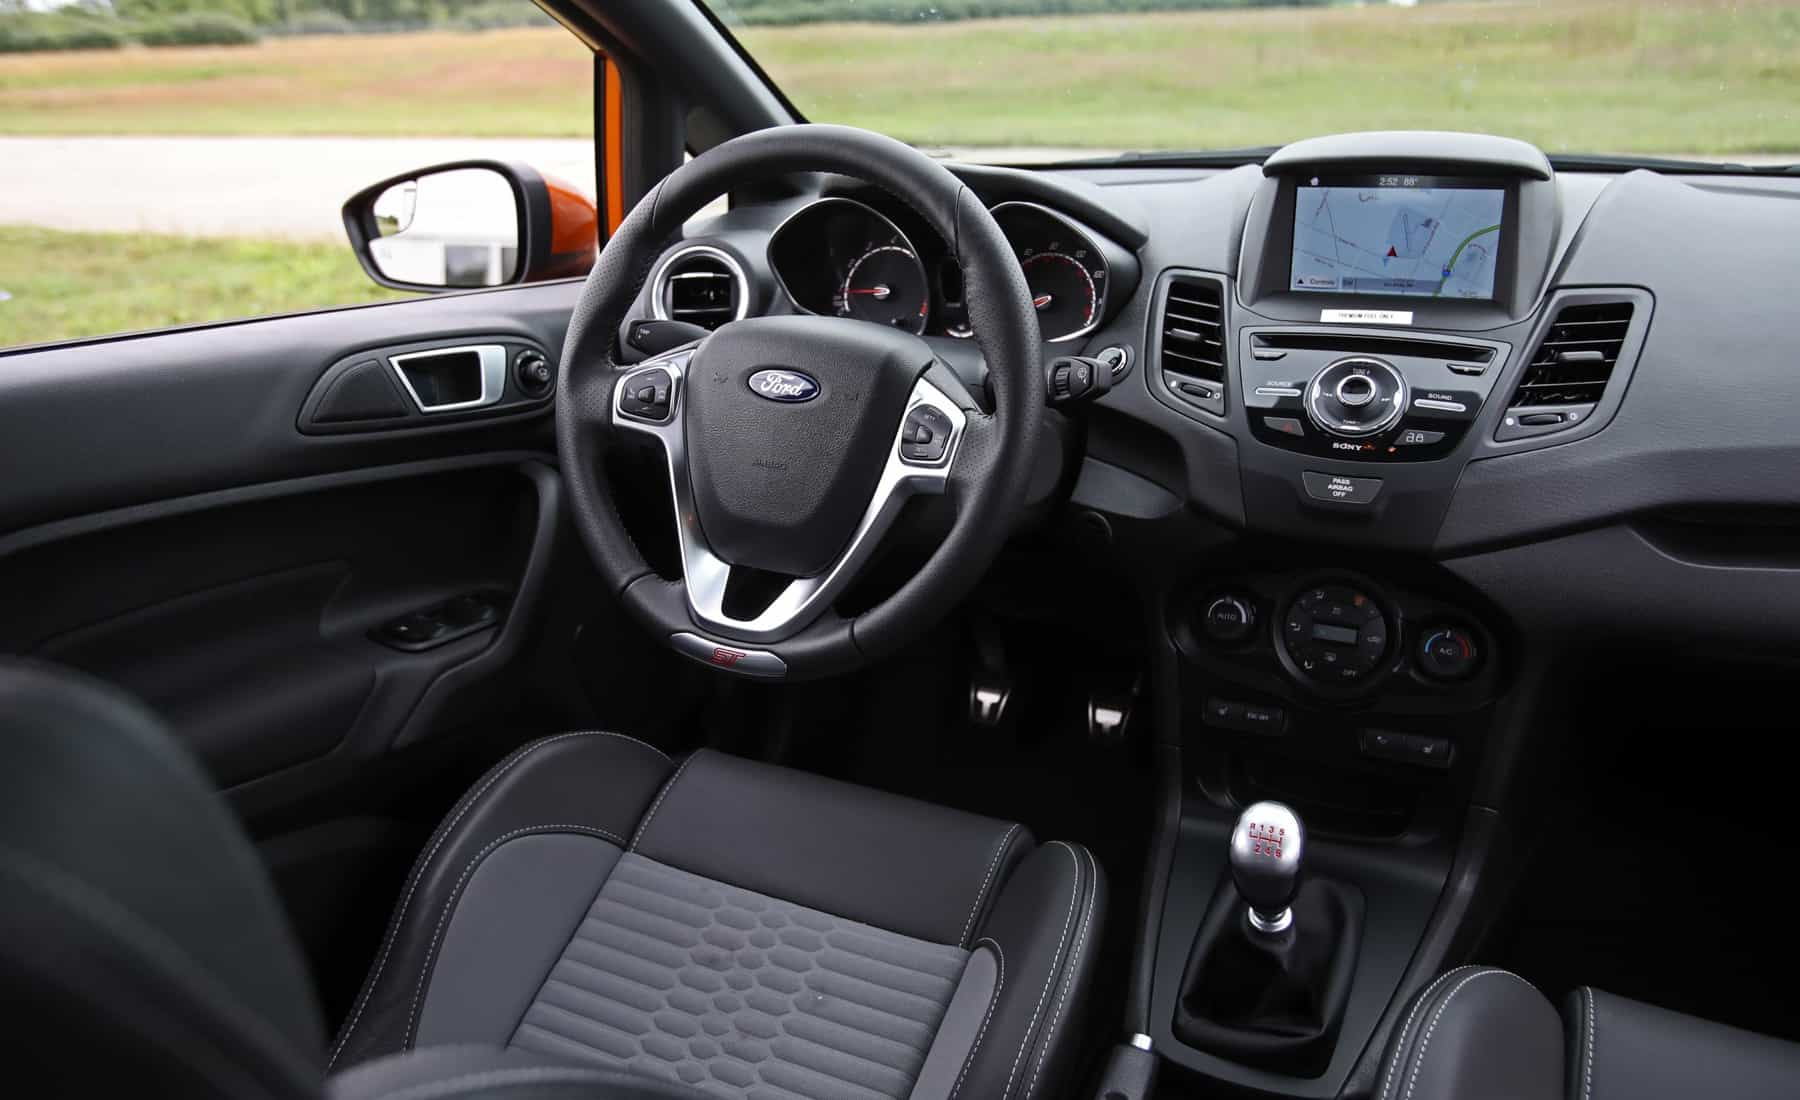 2017 Ford Fiesta ST Interior Driver Cockpit (Photo 18 of 47)